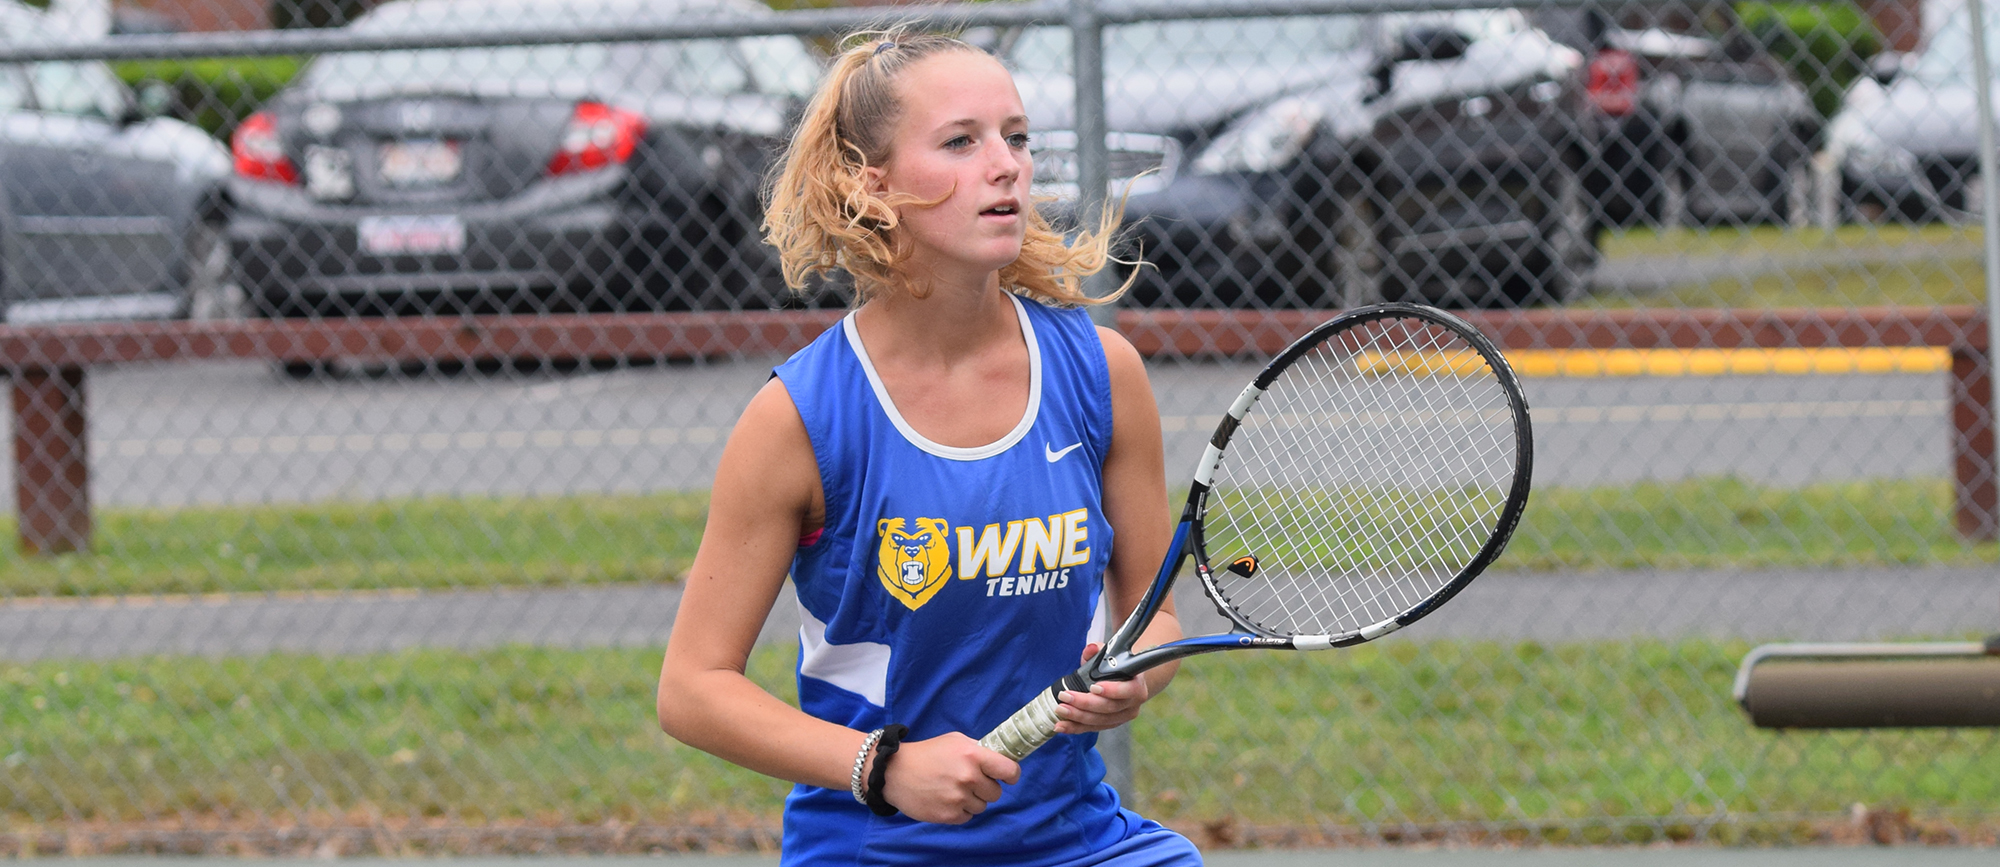 Junior Morgan Schrader won at No. 2 singles in Western New England's CCC-opening loss to Roger Williams on Thursday. (Photo by Rachael Margossian)